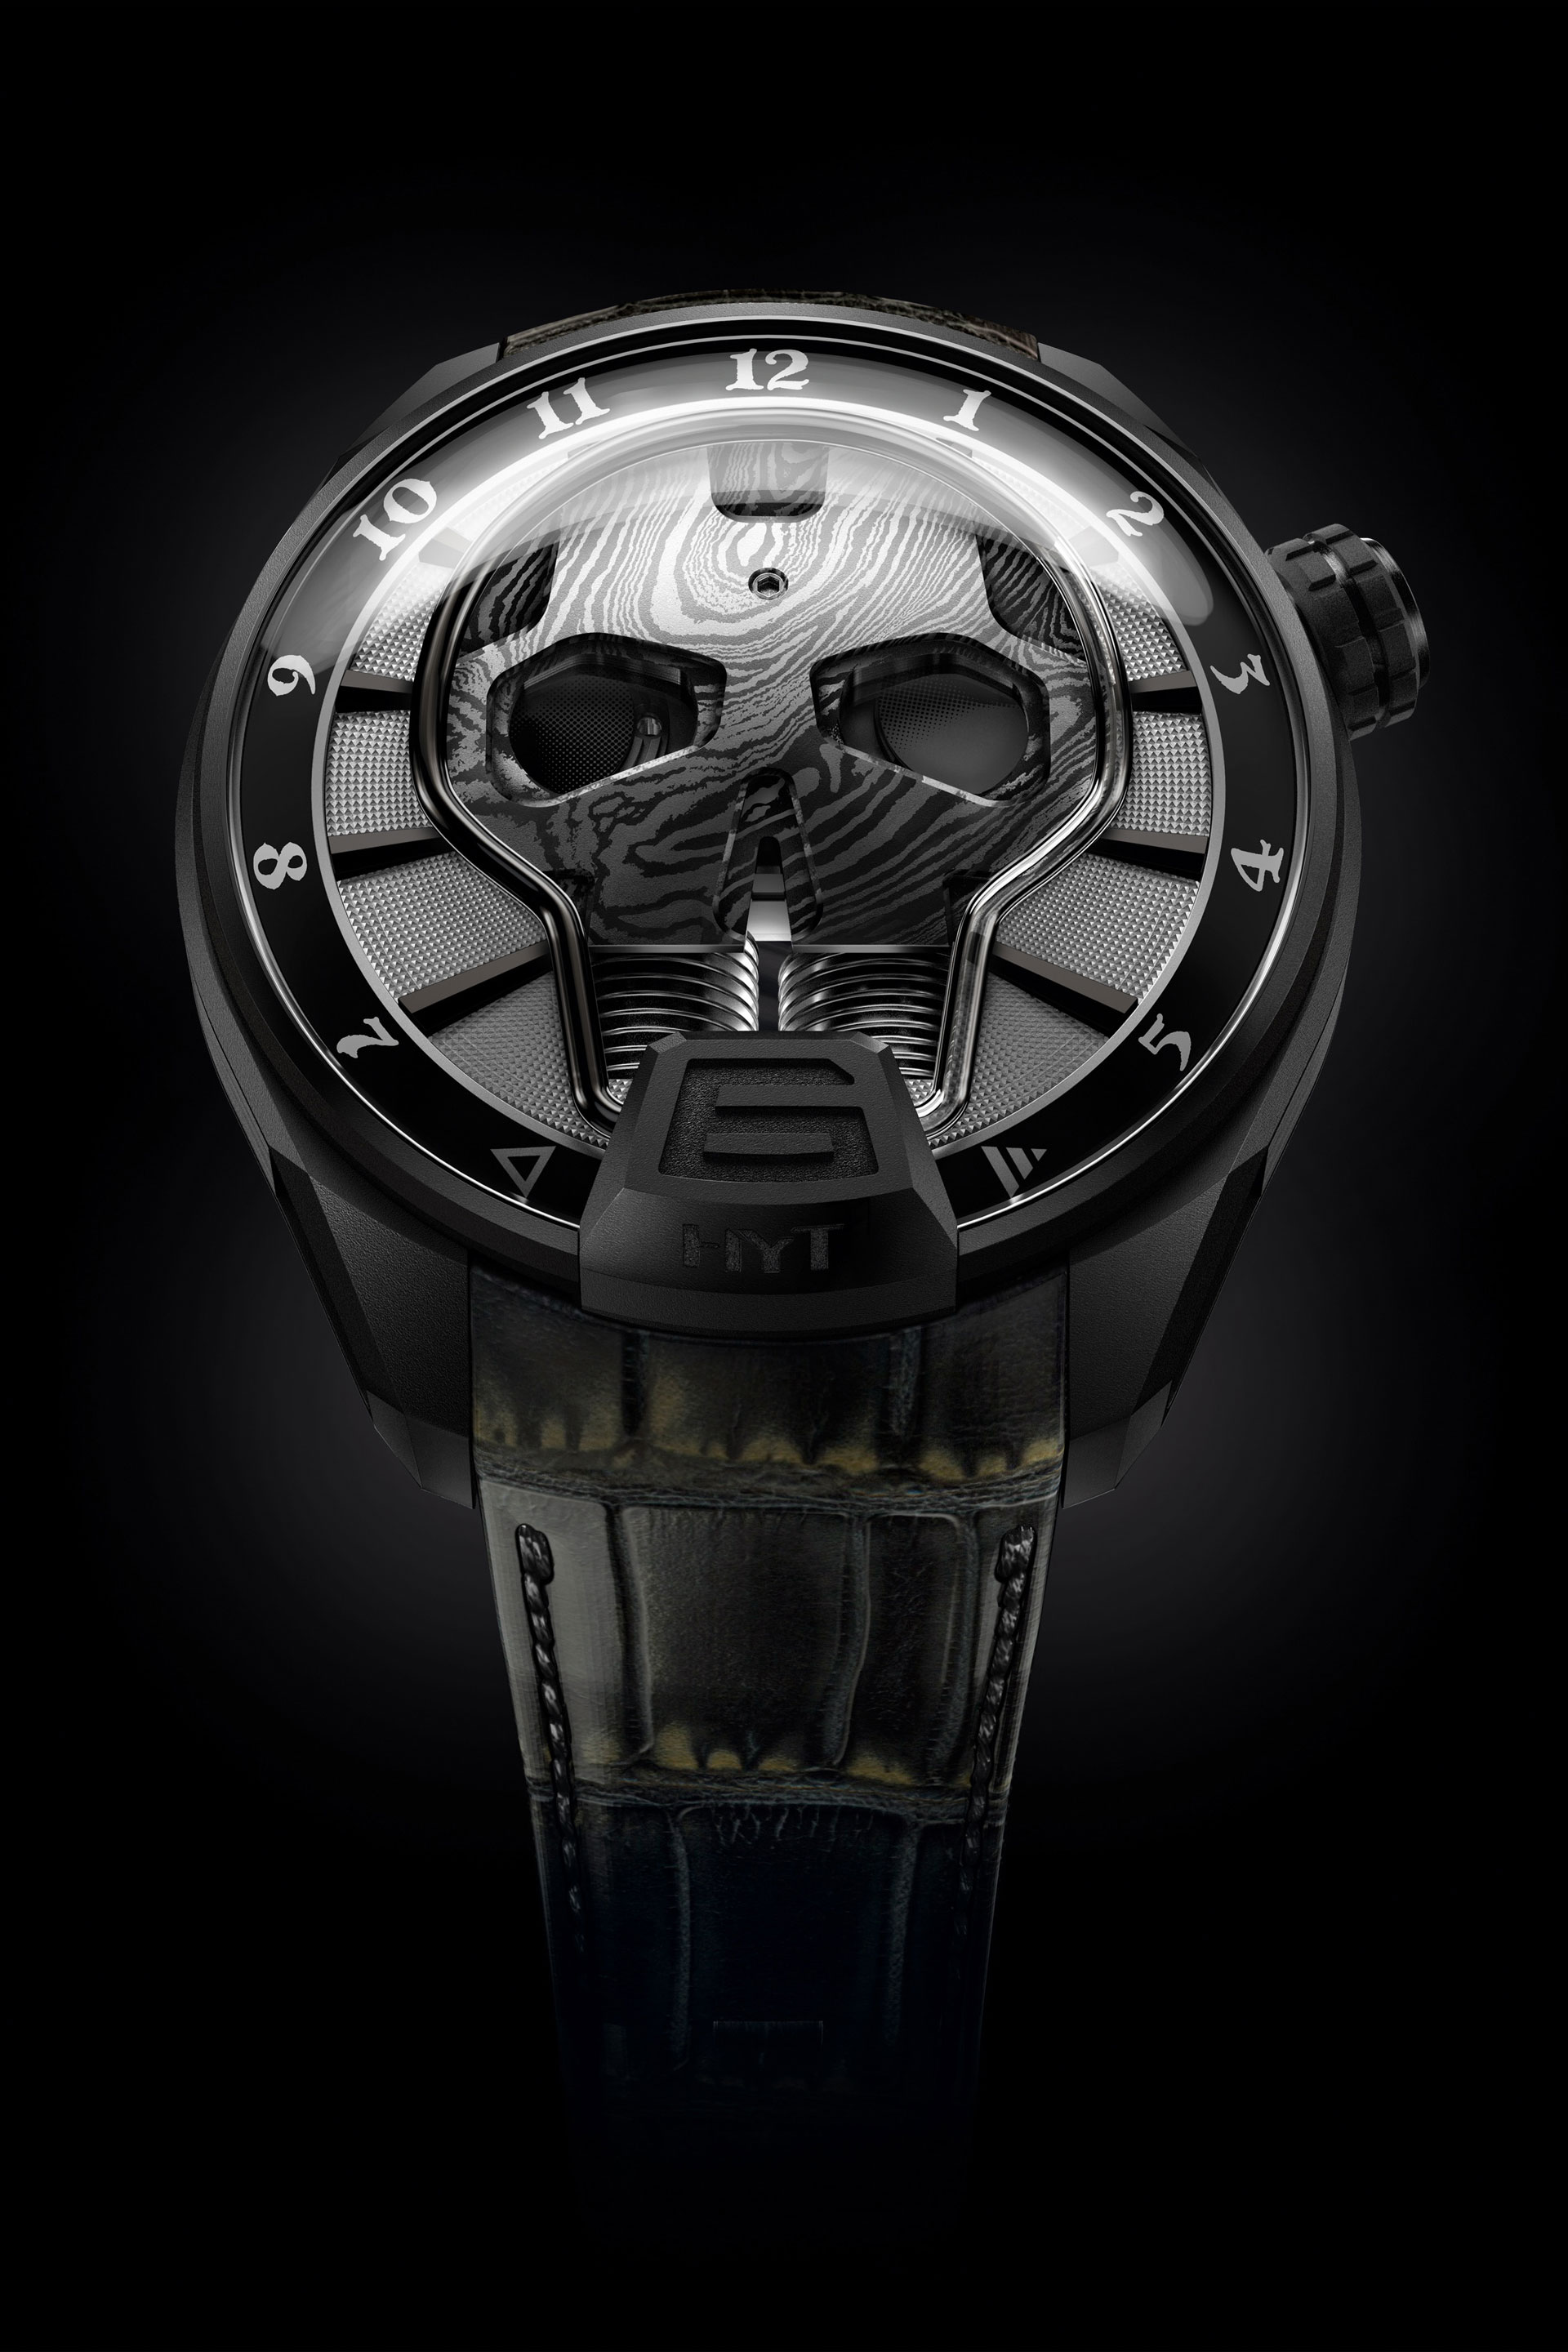 ltd watches the christmas automatic versatile badass gent bomberg chronograph